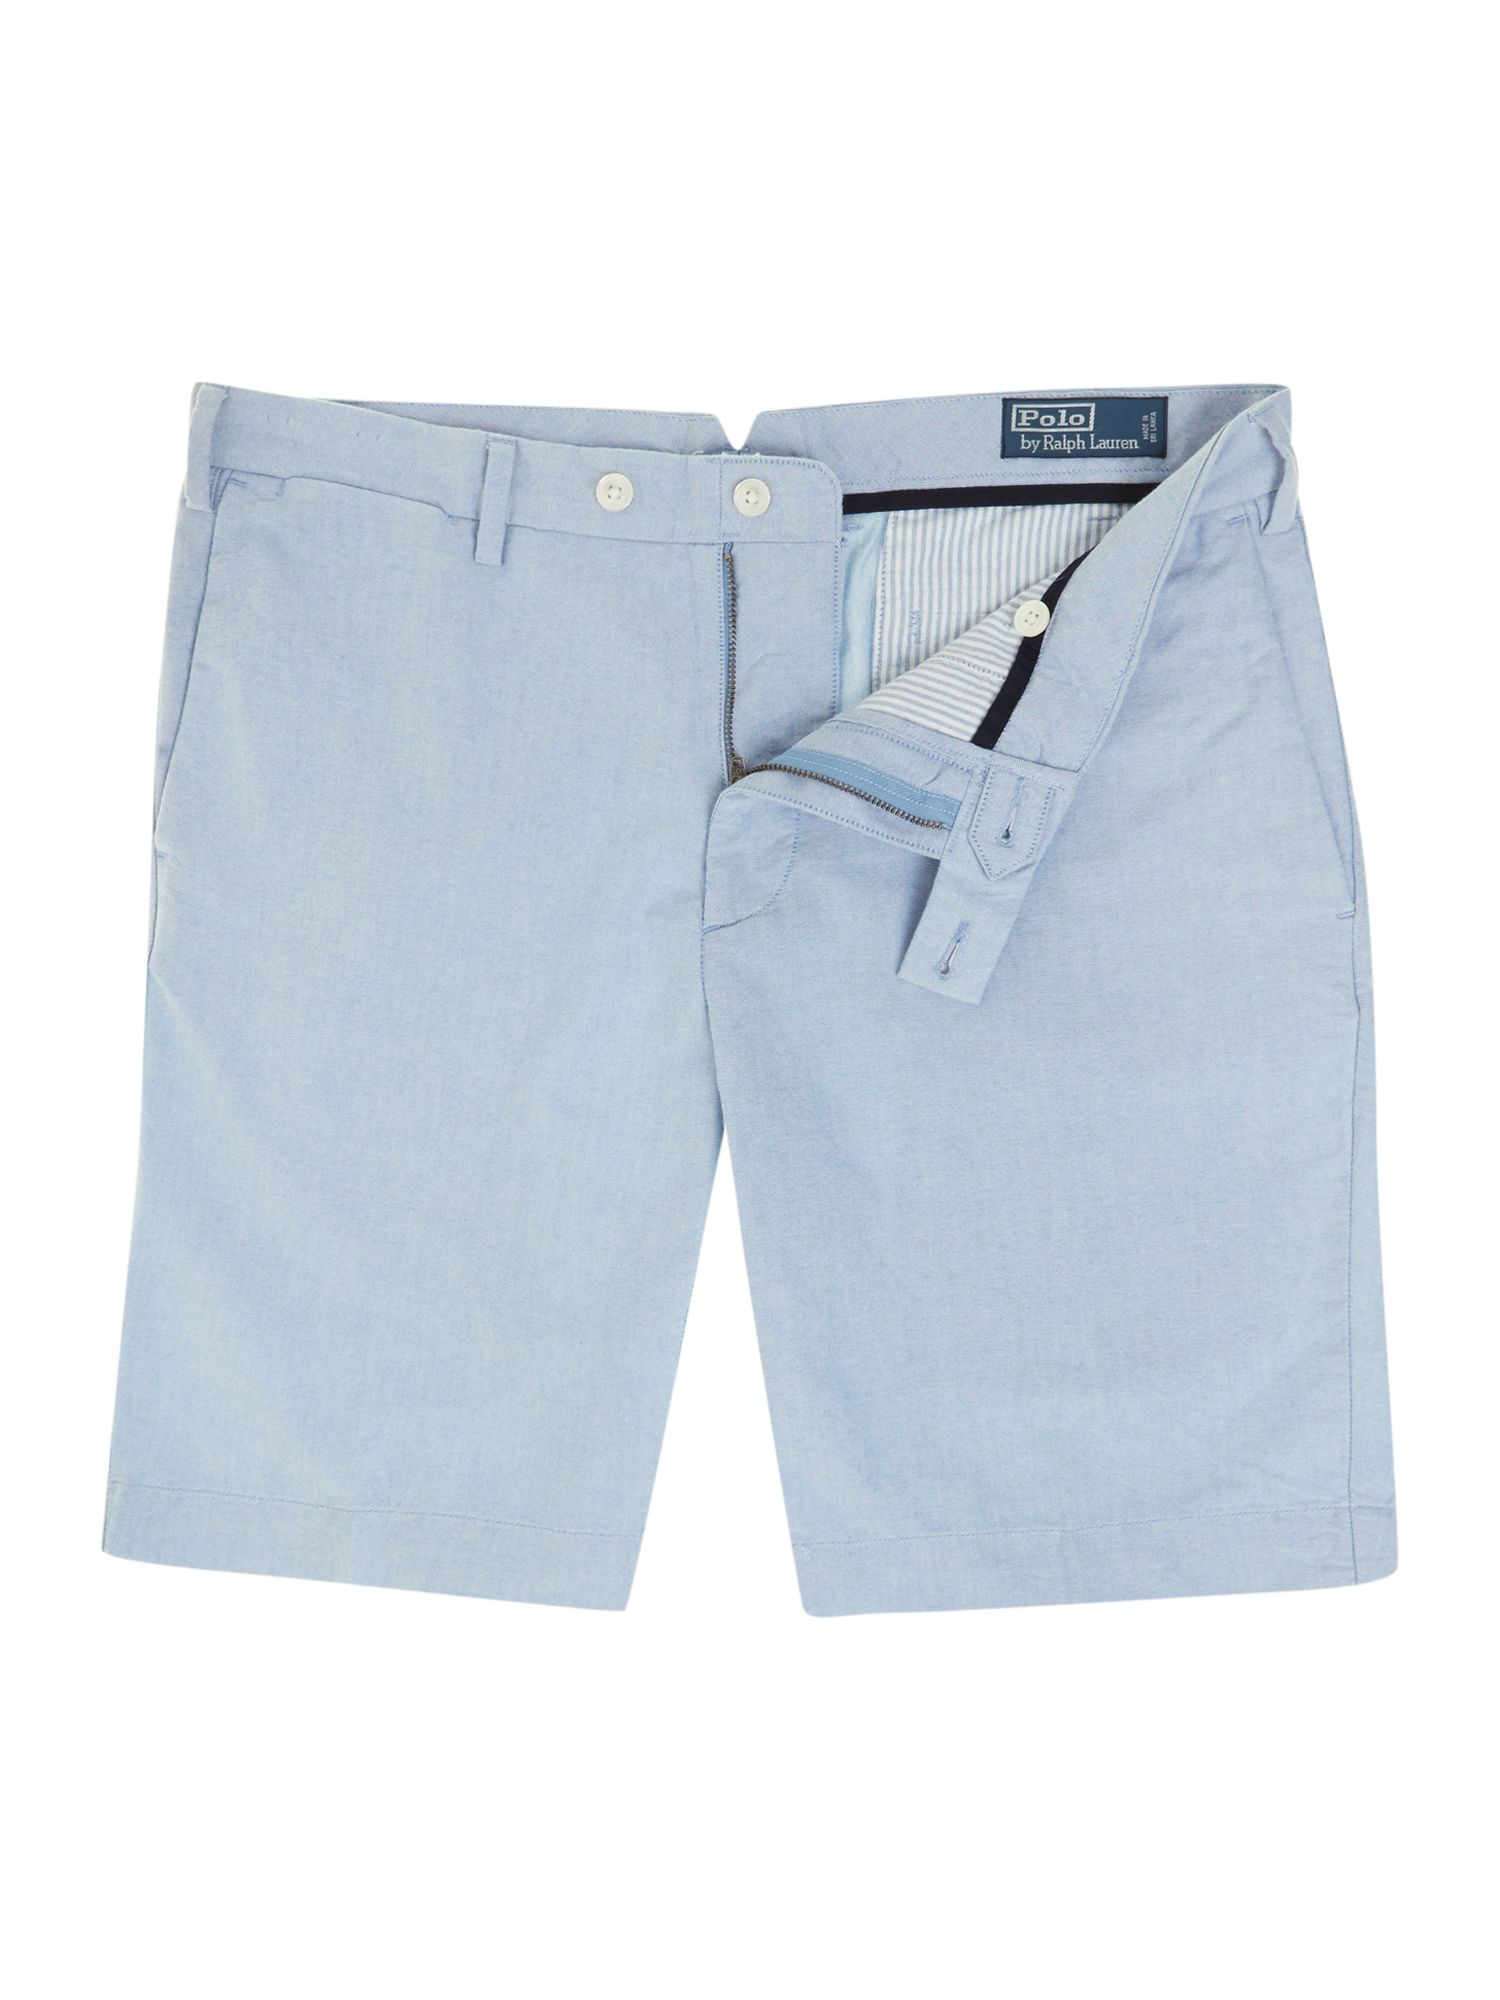 Classic hudson straight fit chino short